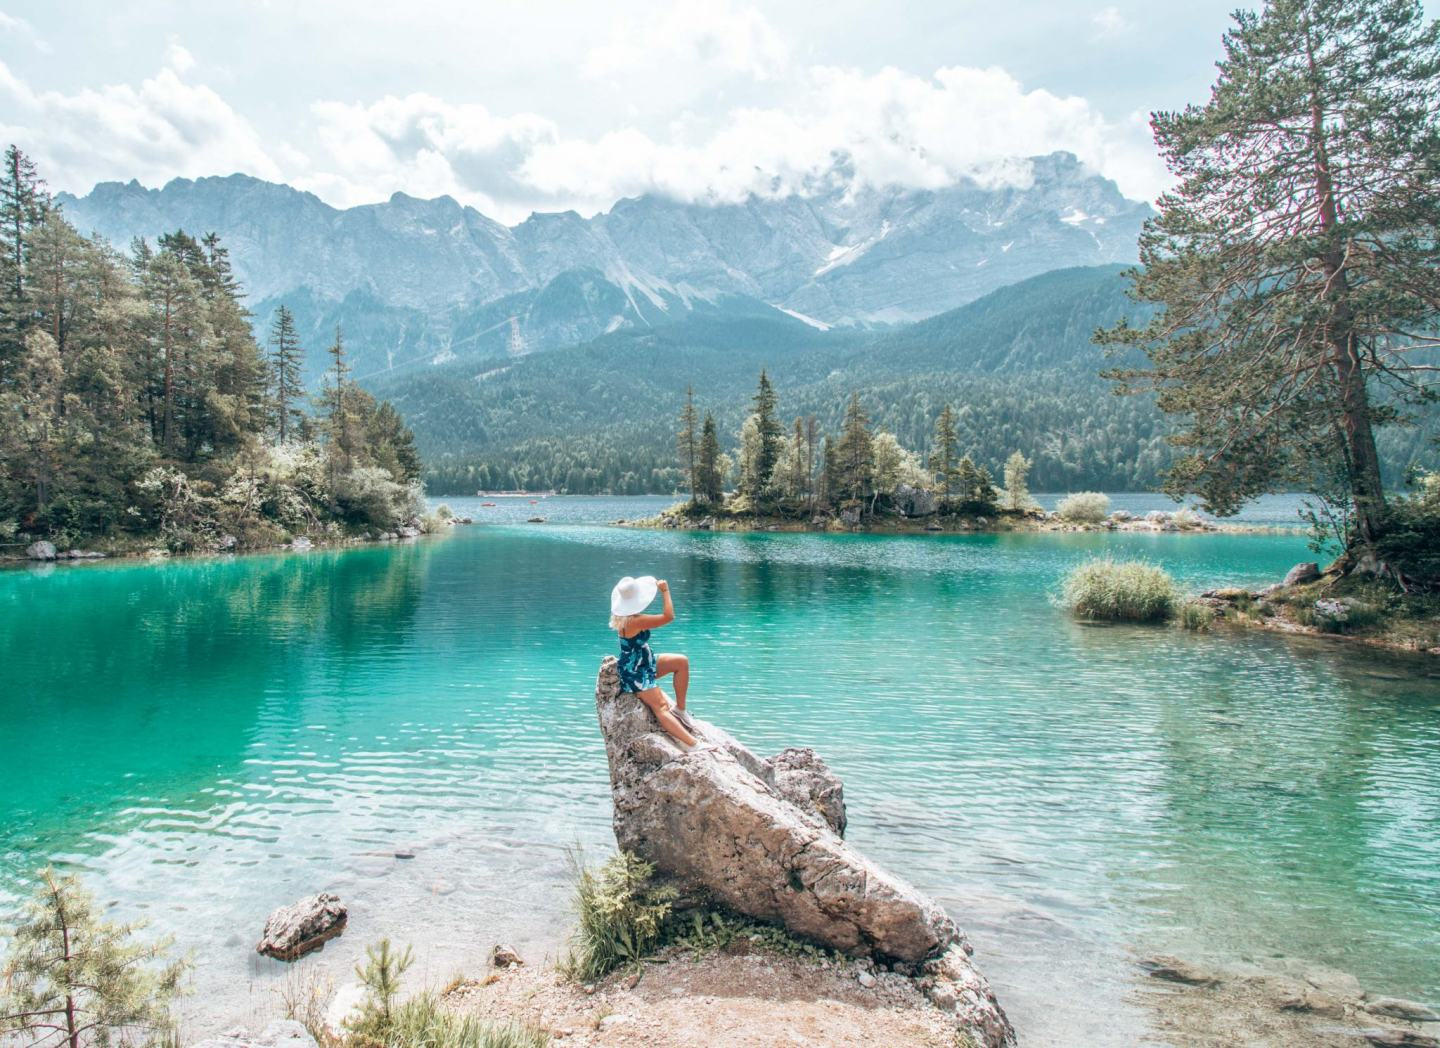 Lake Eibsee: the instagram rock